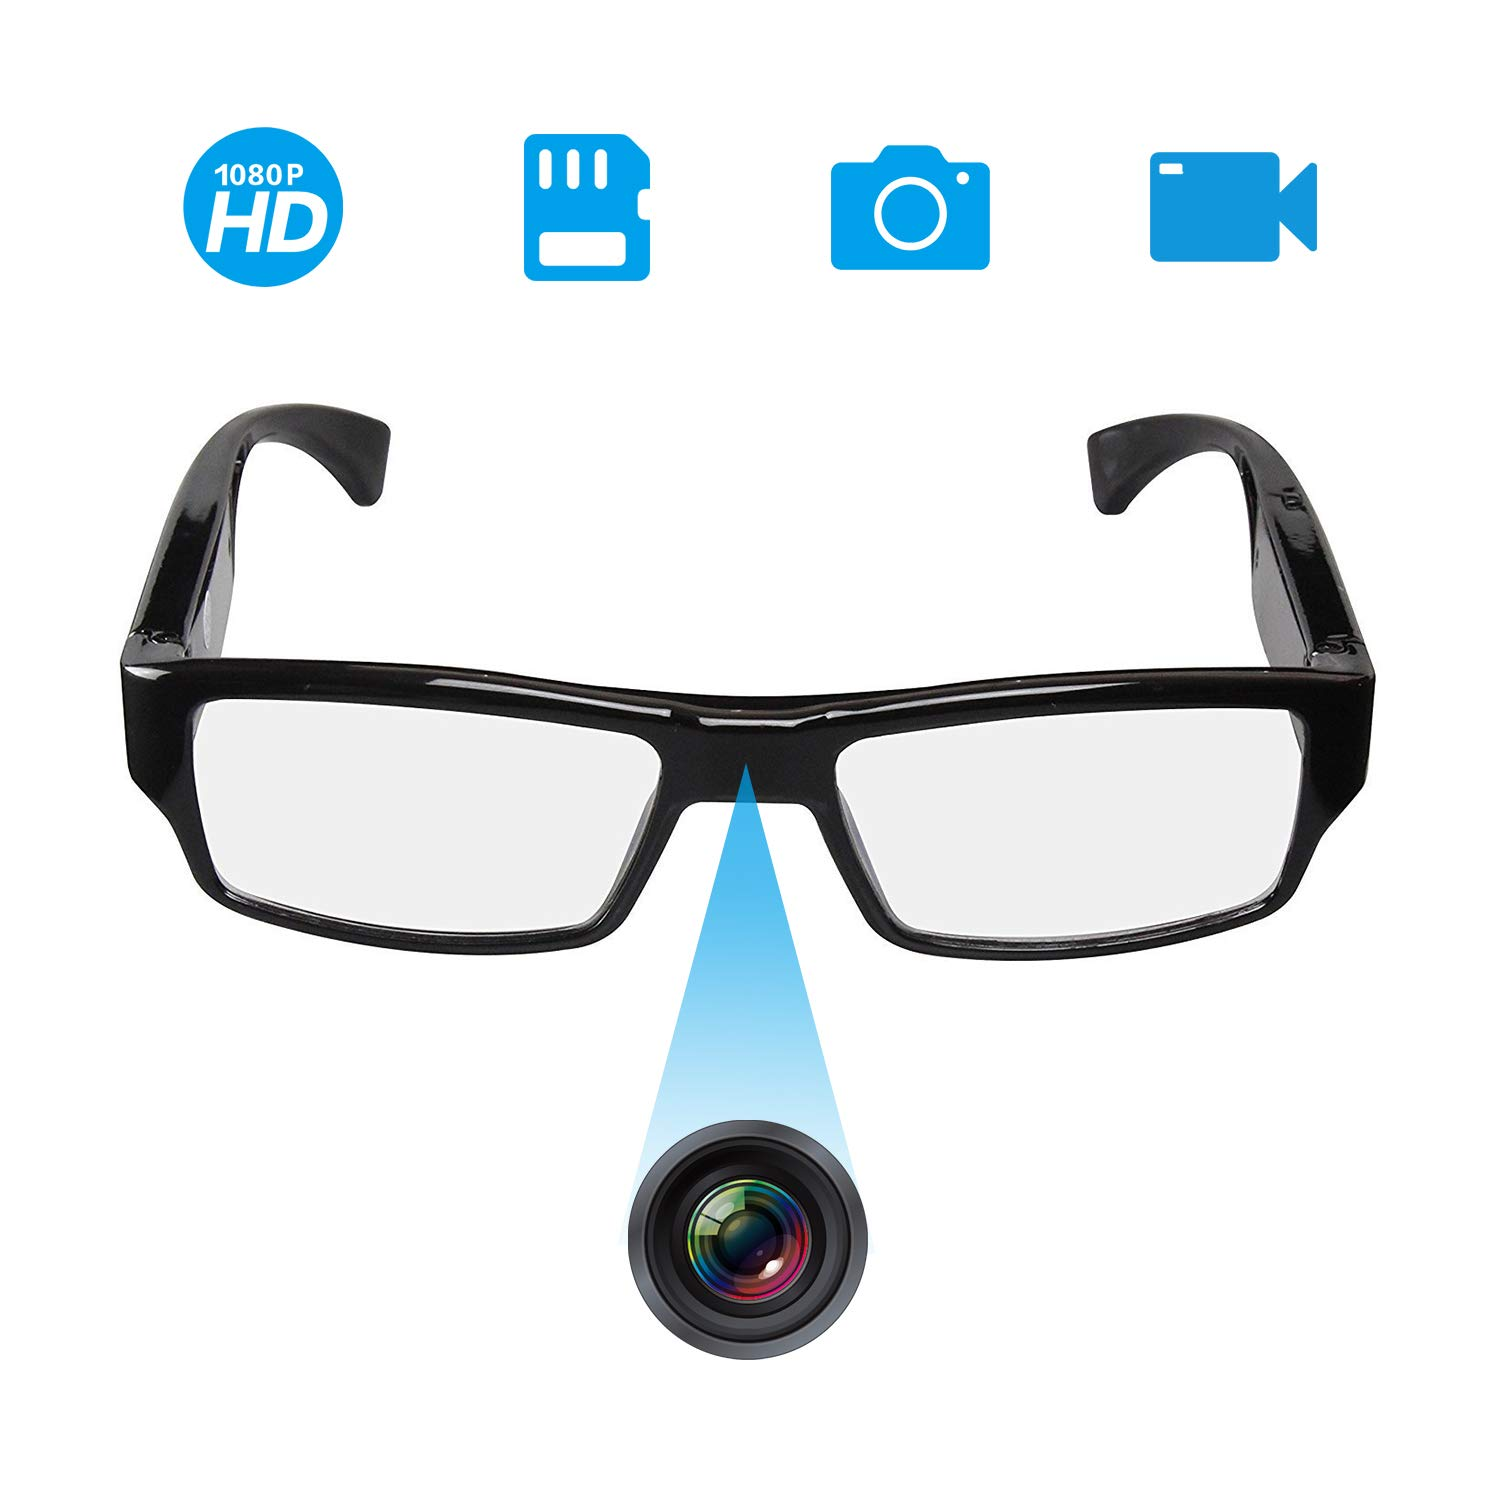 [Upgraded Version] FHD Hidden Camera Eyeglasses, Super Small Surveillance Spy Camera Glasses,Video Recorder,Snapshot,USB Charger Cable by YAOAWE